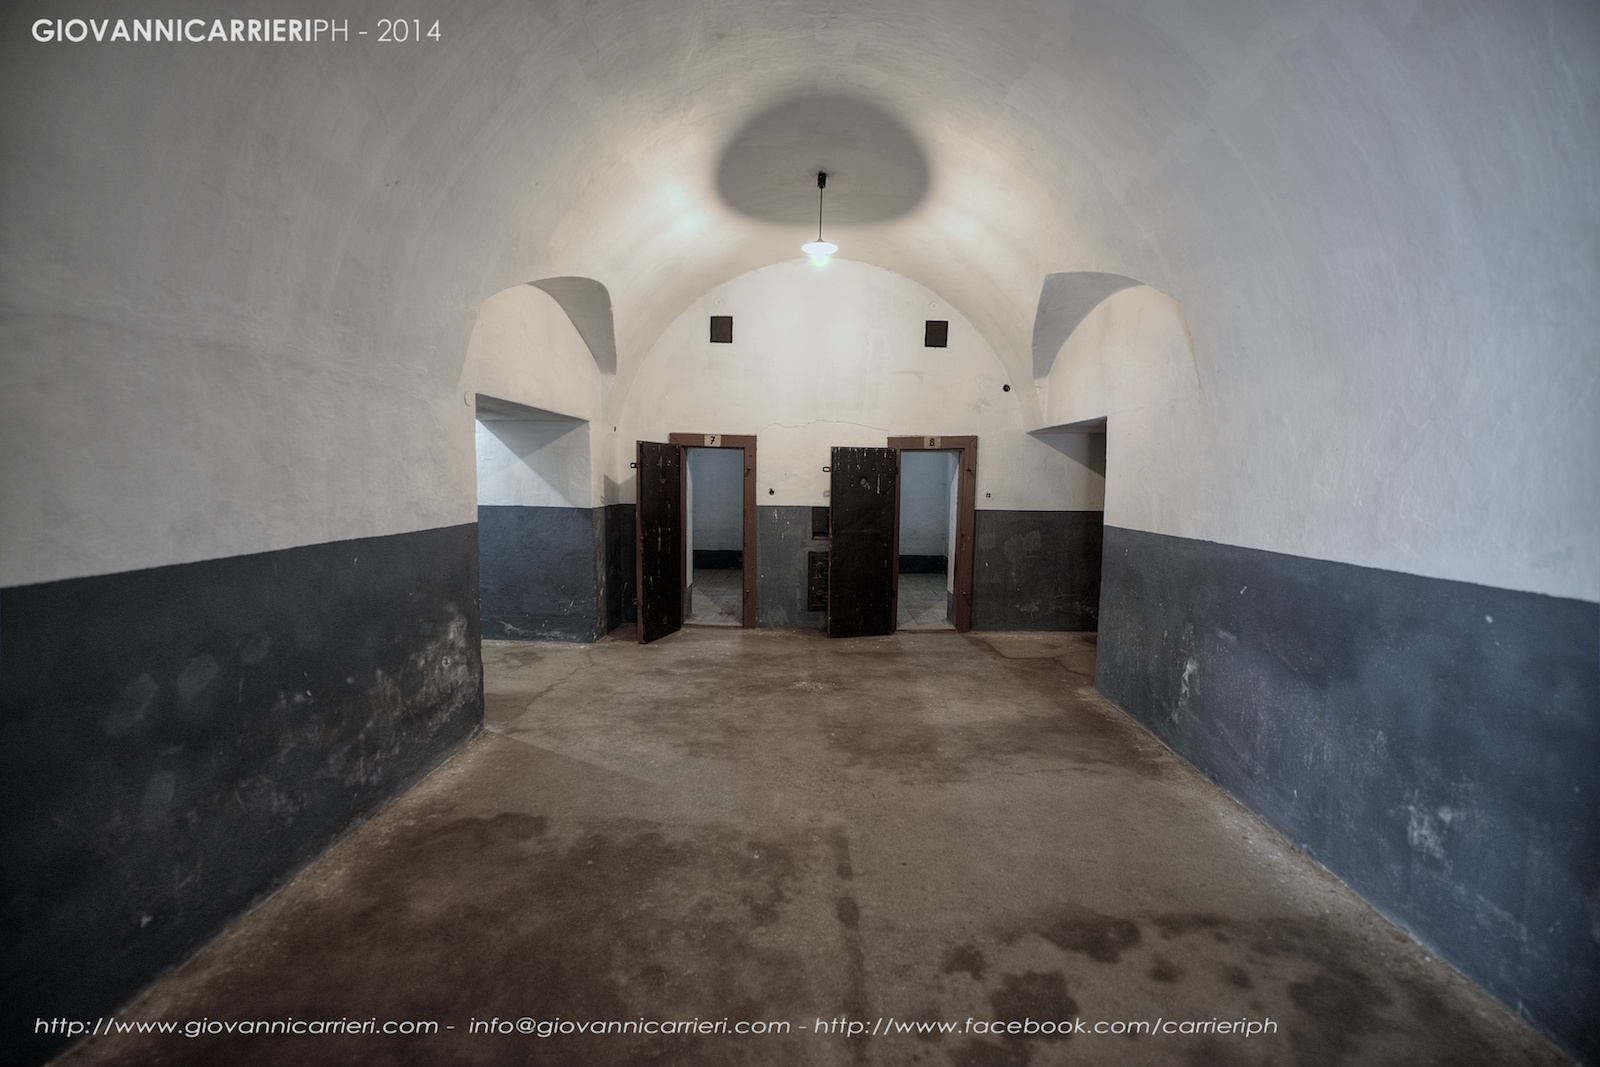 Le celle di isolamento - Theresienstadt